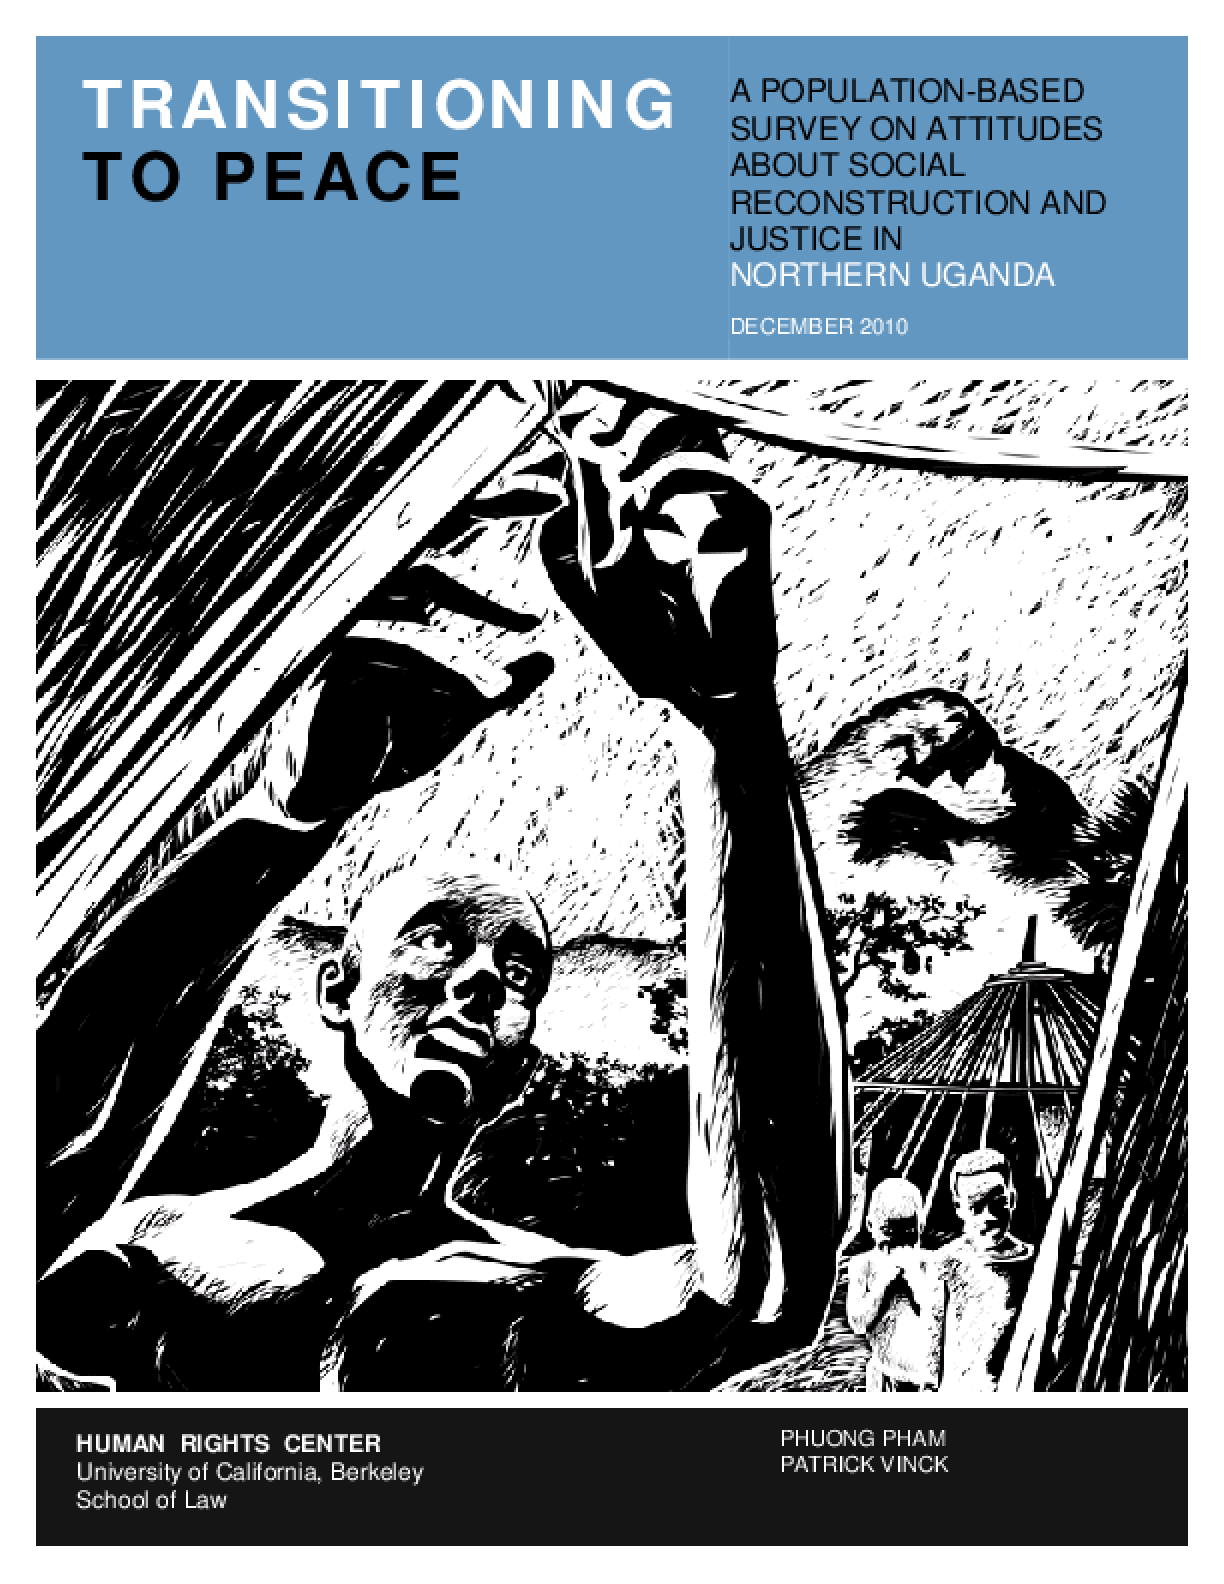 Transitioning to Peace: A Population-Based Survey on Attitudes About Social Reconstruction and Justice in Northern Uganda